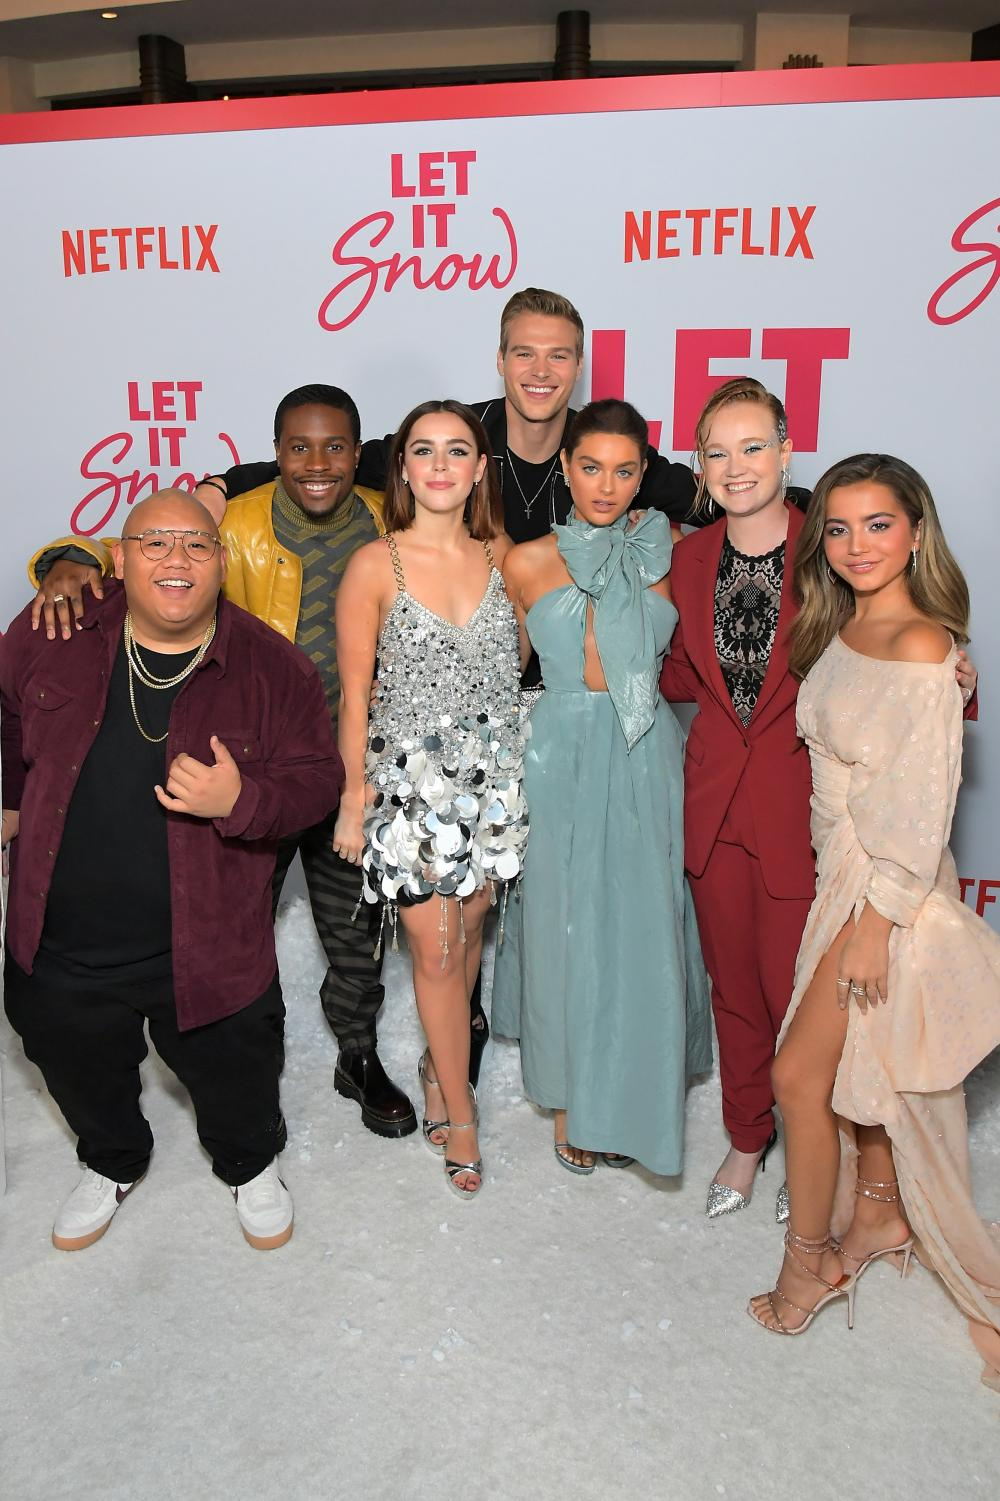 """The cast of Netflix Original """"Let it Snow"""" poses for a photo at the premiere. The movie is based on the book by authors John Green, Maureen Johnson, and Lauren Myracle"""